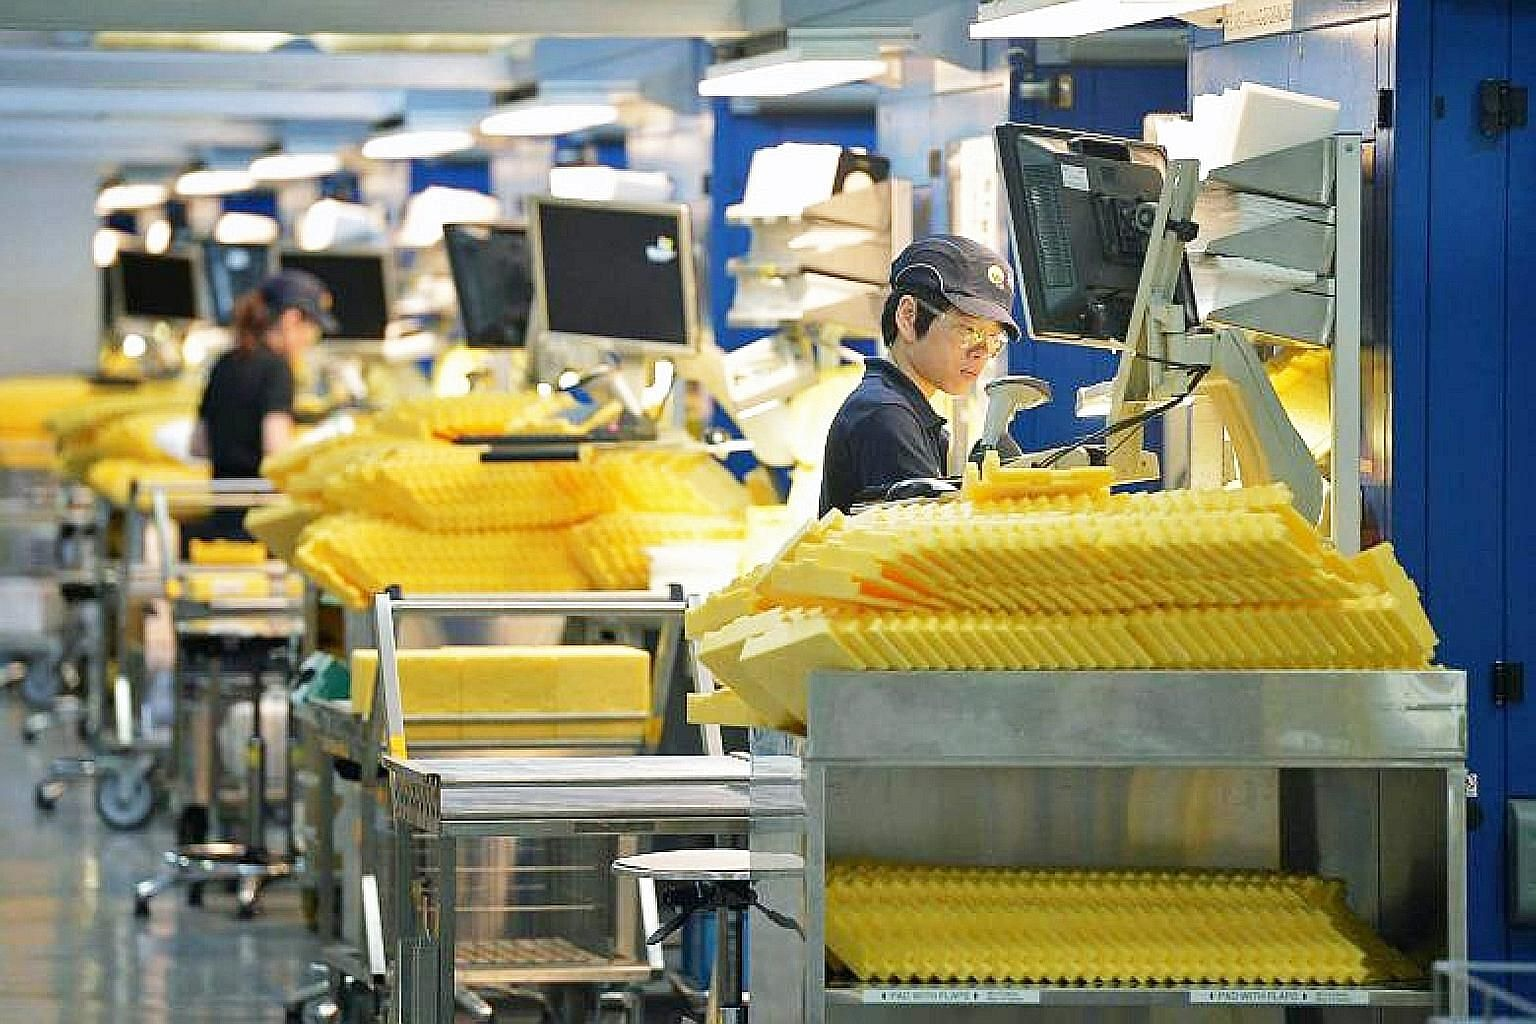 In the third quarter, the manufacturing sector contracted 3.5 per cent year on year. Industries such as manufacturing, especially electronics, precision engineering and transport engineering, have been hit harder, said Singapore Business Federation c